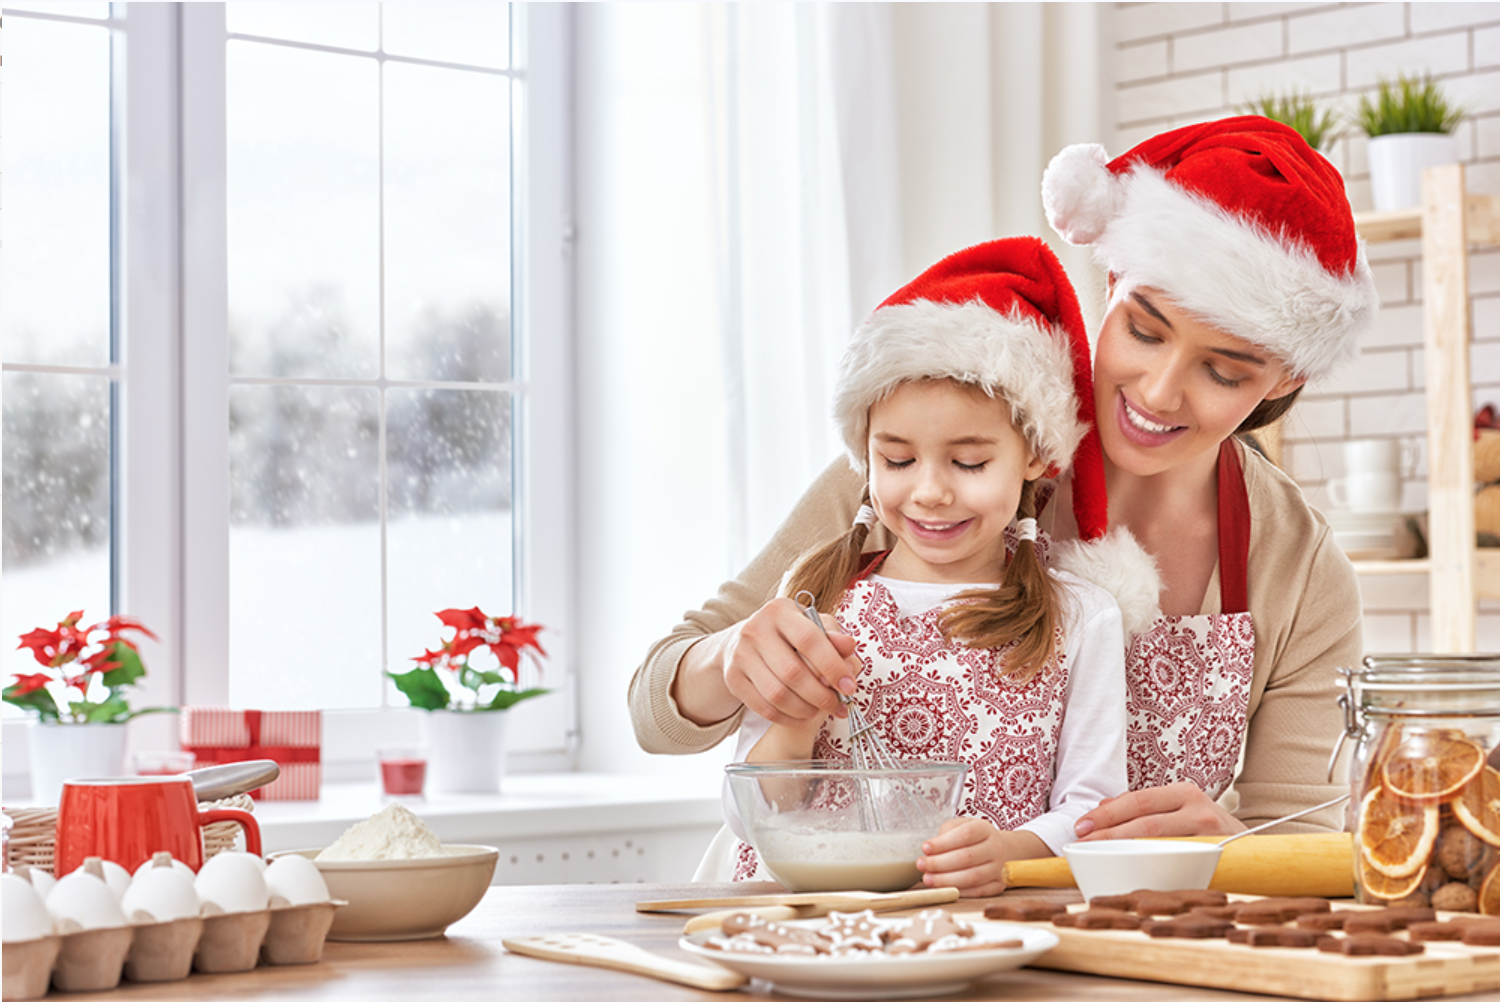 holiday cooking for allergy-prone kids